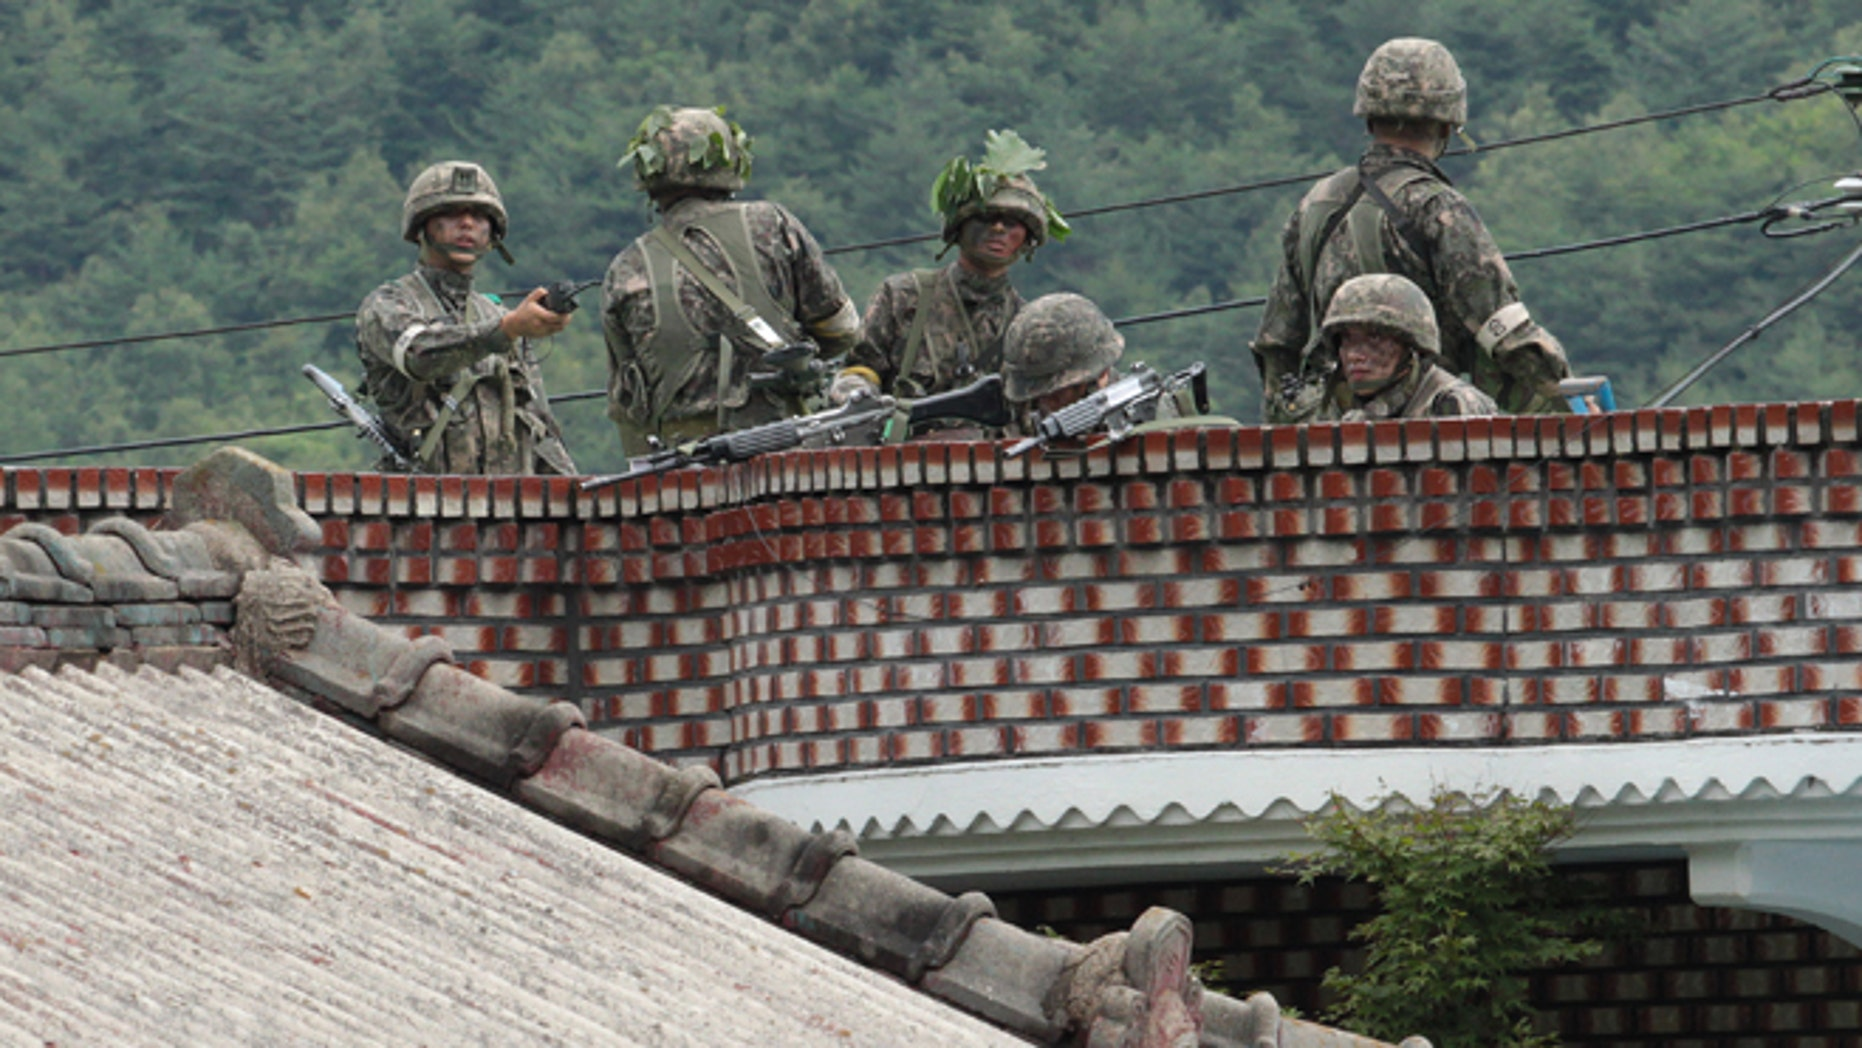 June 22, 2014: South Korean army soldiers take position on the roof of a private house to search for a South Korean conscript soldier who is on the run after a shooting incident in Goseong, South Korea. (AP)